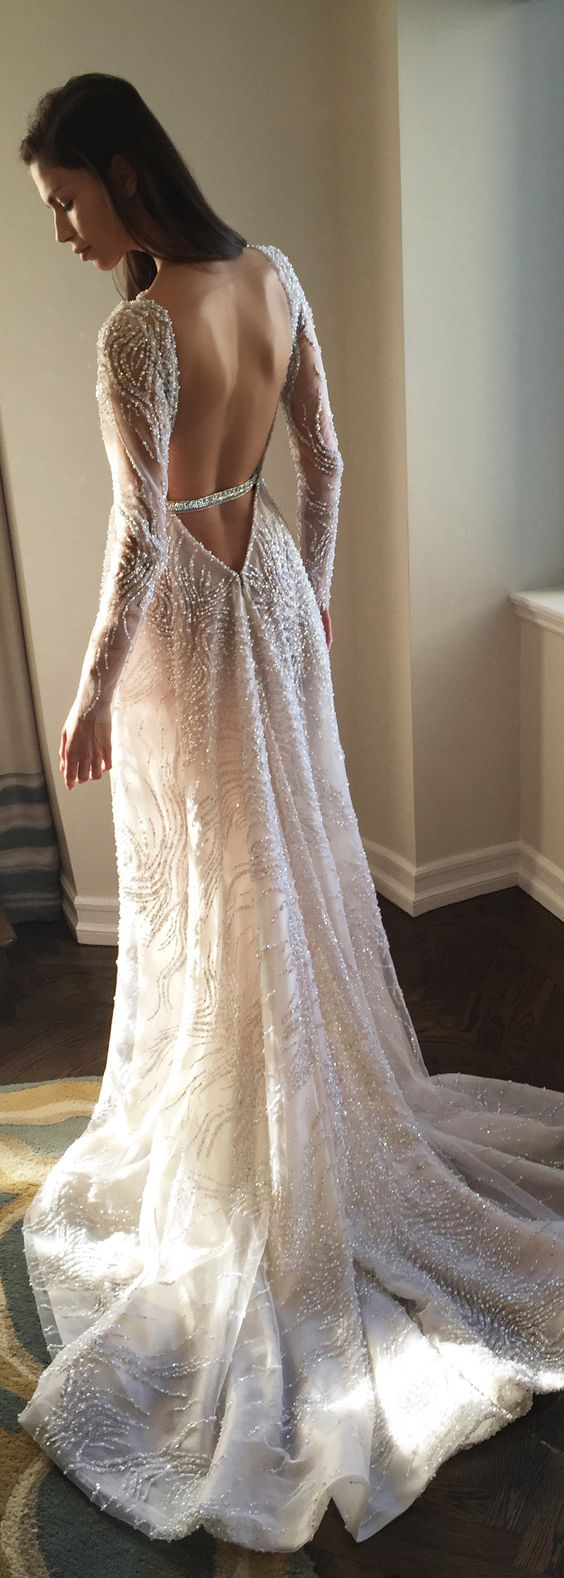 Berta brida wedding dresses look u style pinterest wedding